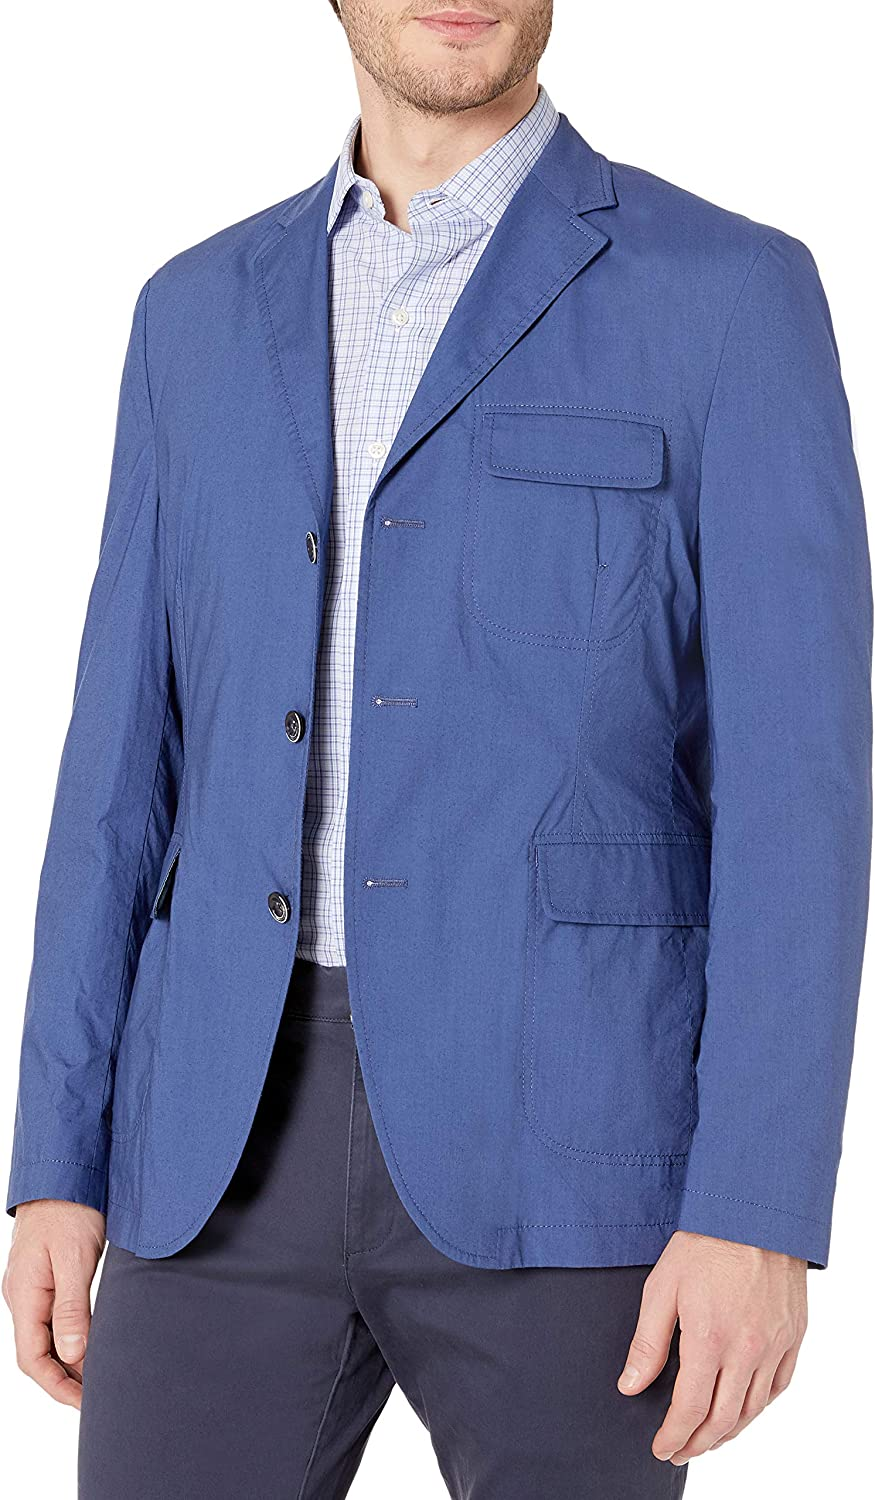 Kroon Men's King Cotton with Stretch Technical Italian Fabric